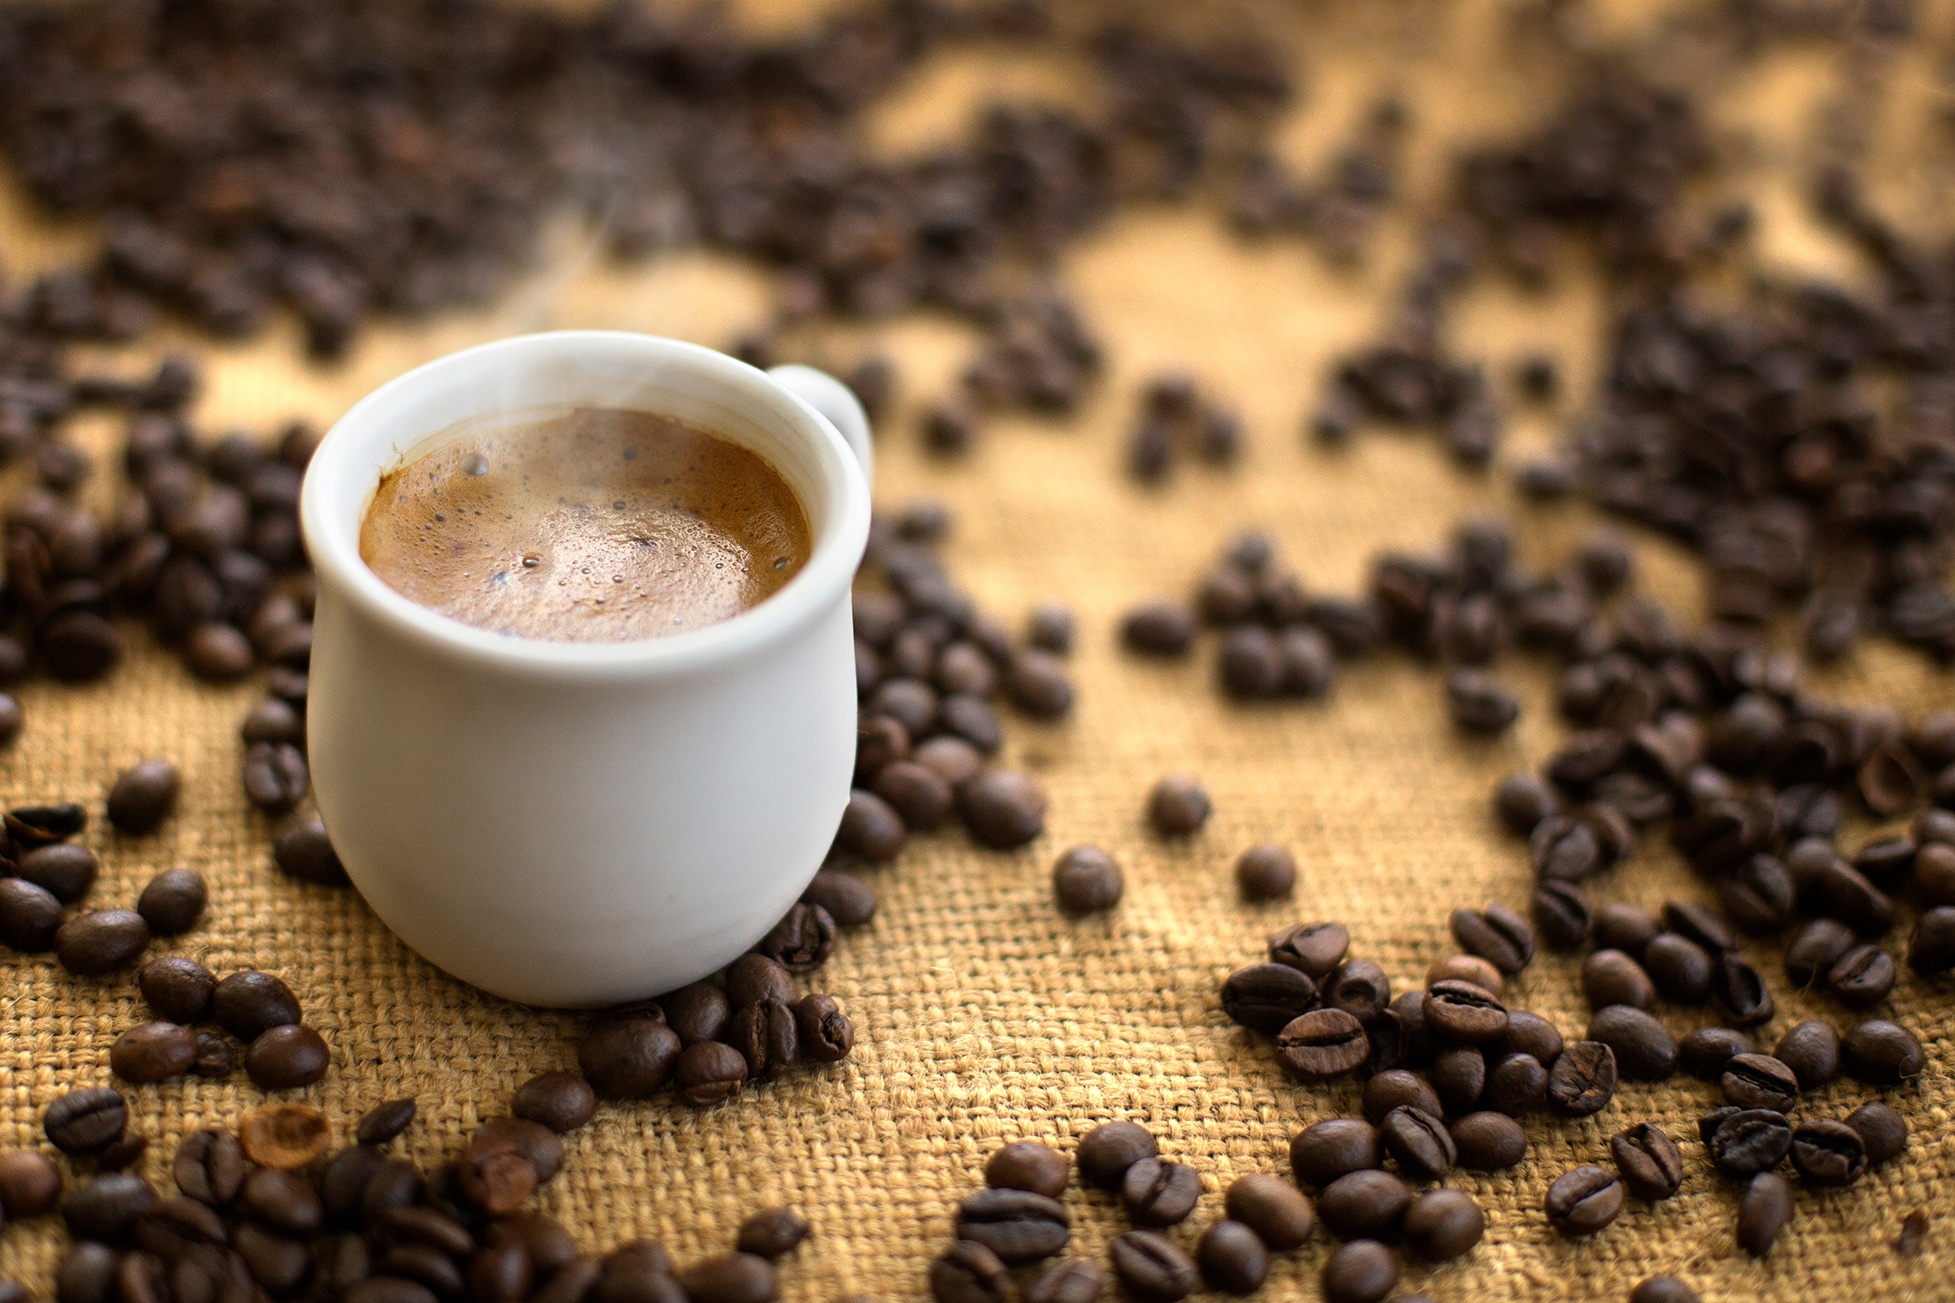 How much coffee can you drink a day on keto